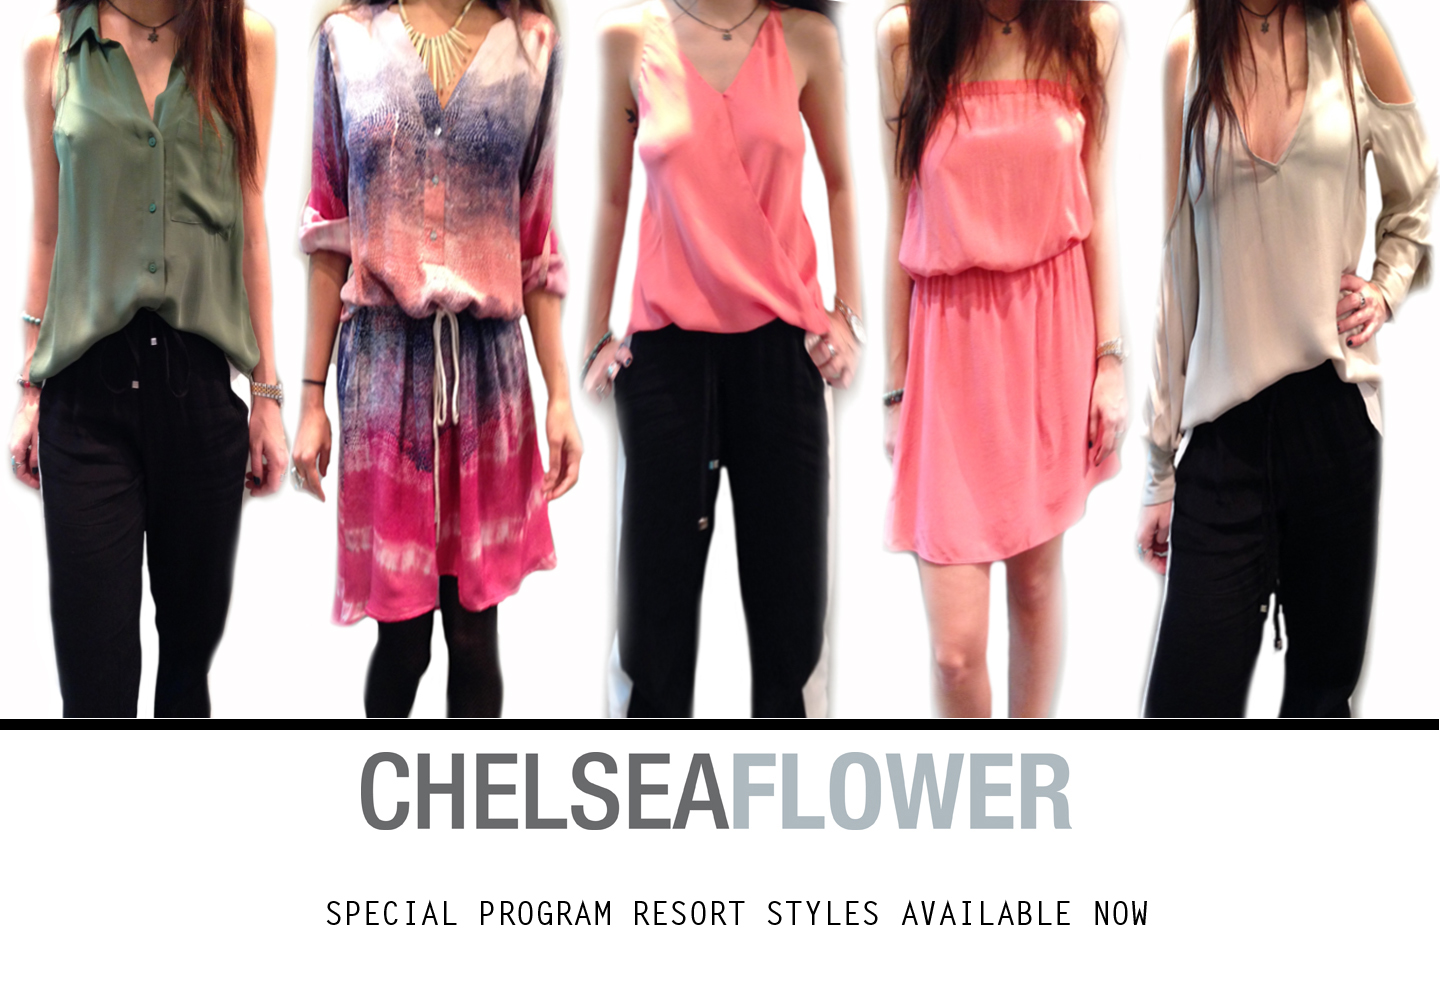 Chelsea Flower clothing online exclusives